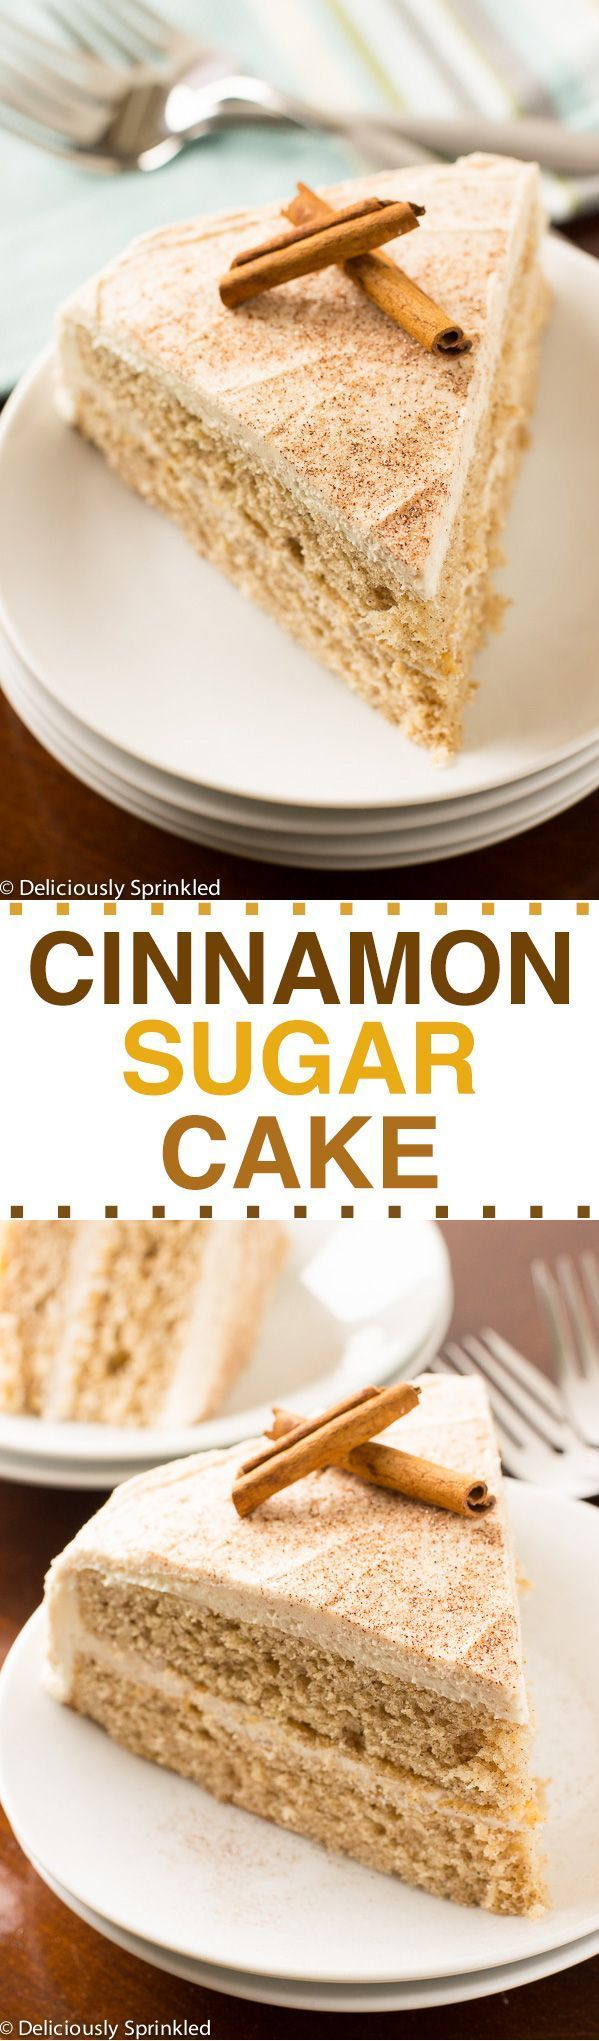 The BEST Cinnamon-Sugar Cake Recipe  Thanksgiving Desserts, Christmas Desserts, Cake Recipes, Holiday Desserts, Easy Dessert Recipes, Cinnamon, Buttercream Frosting Recipes